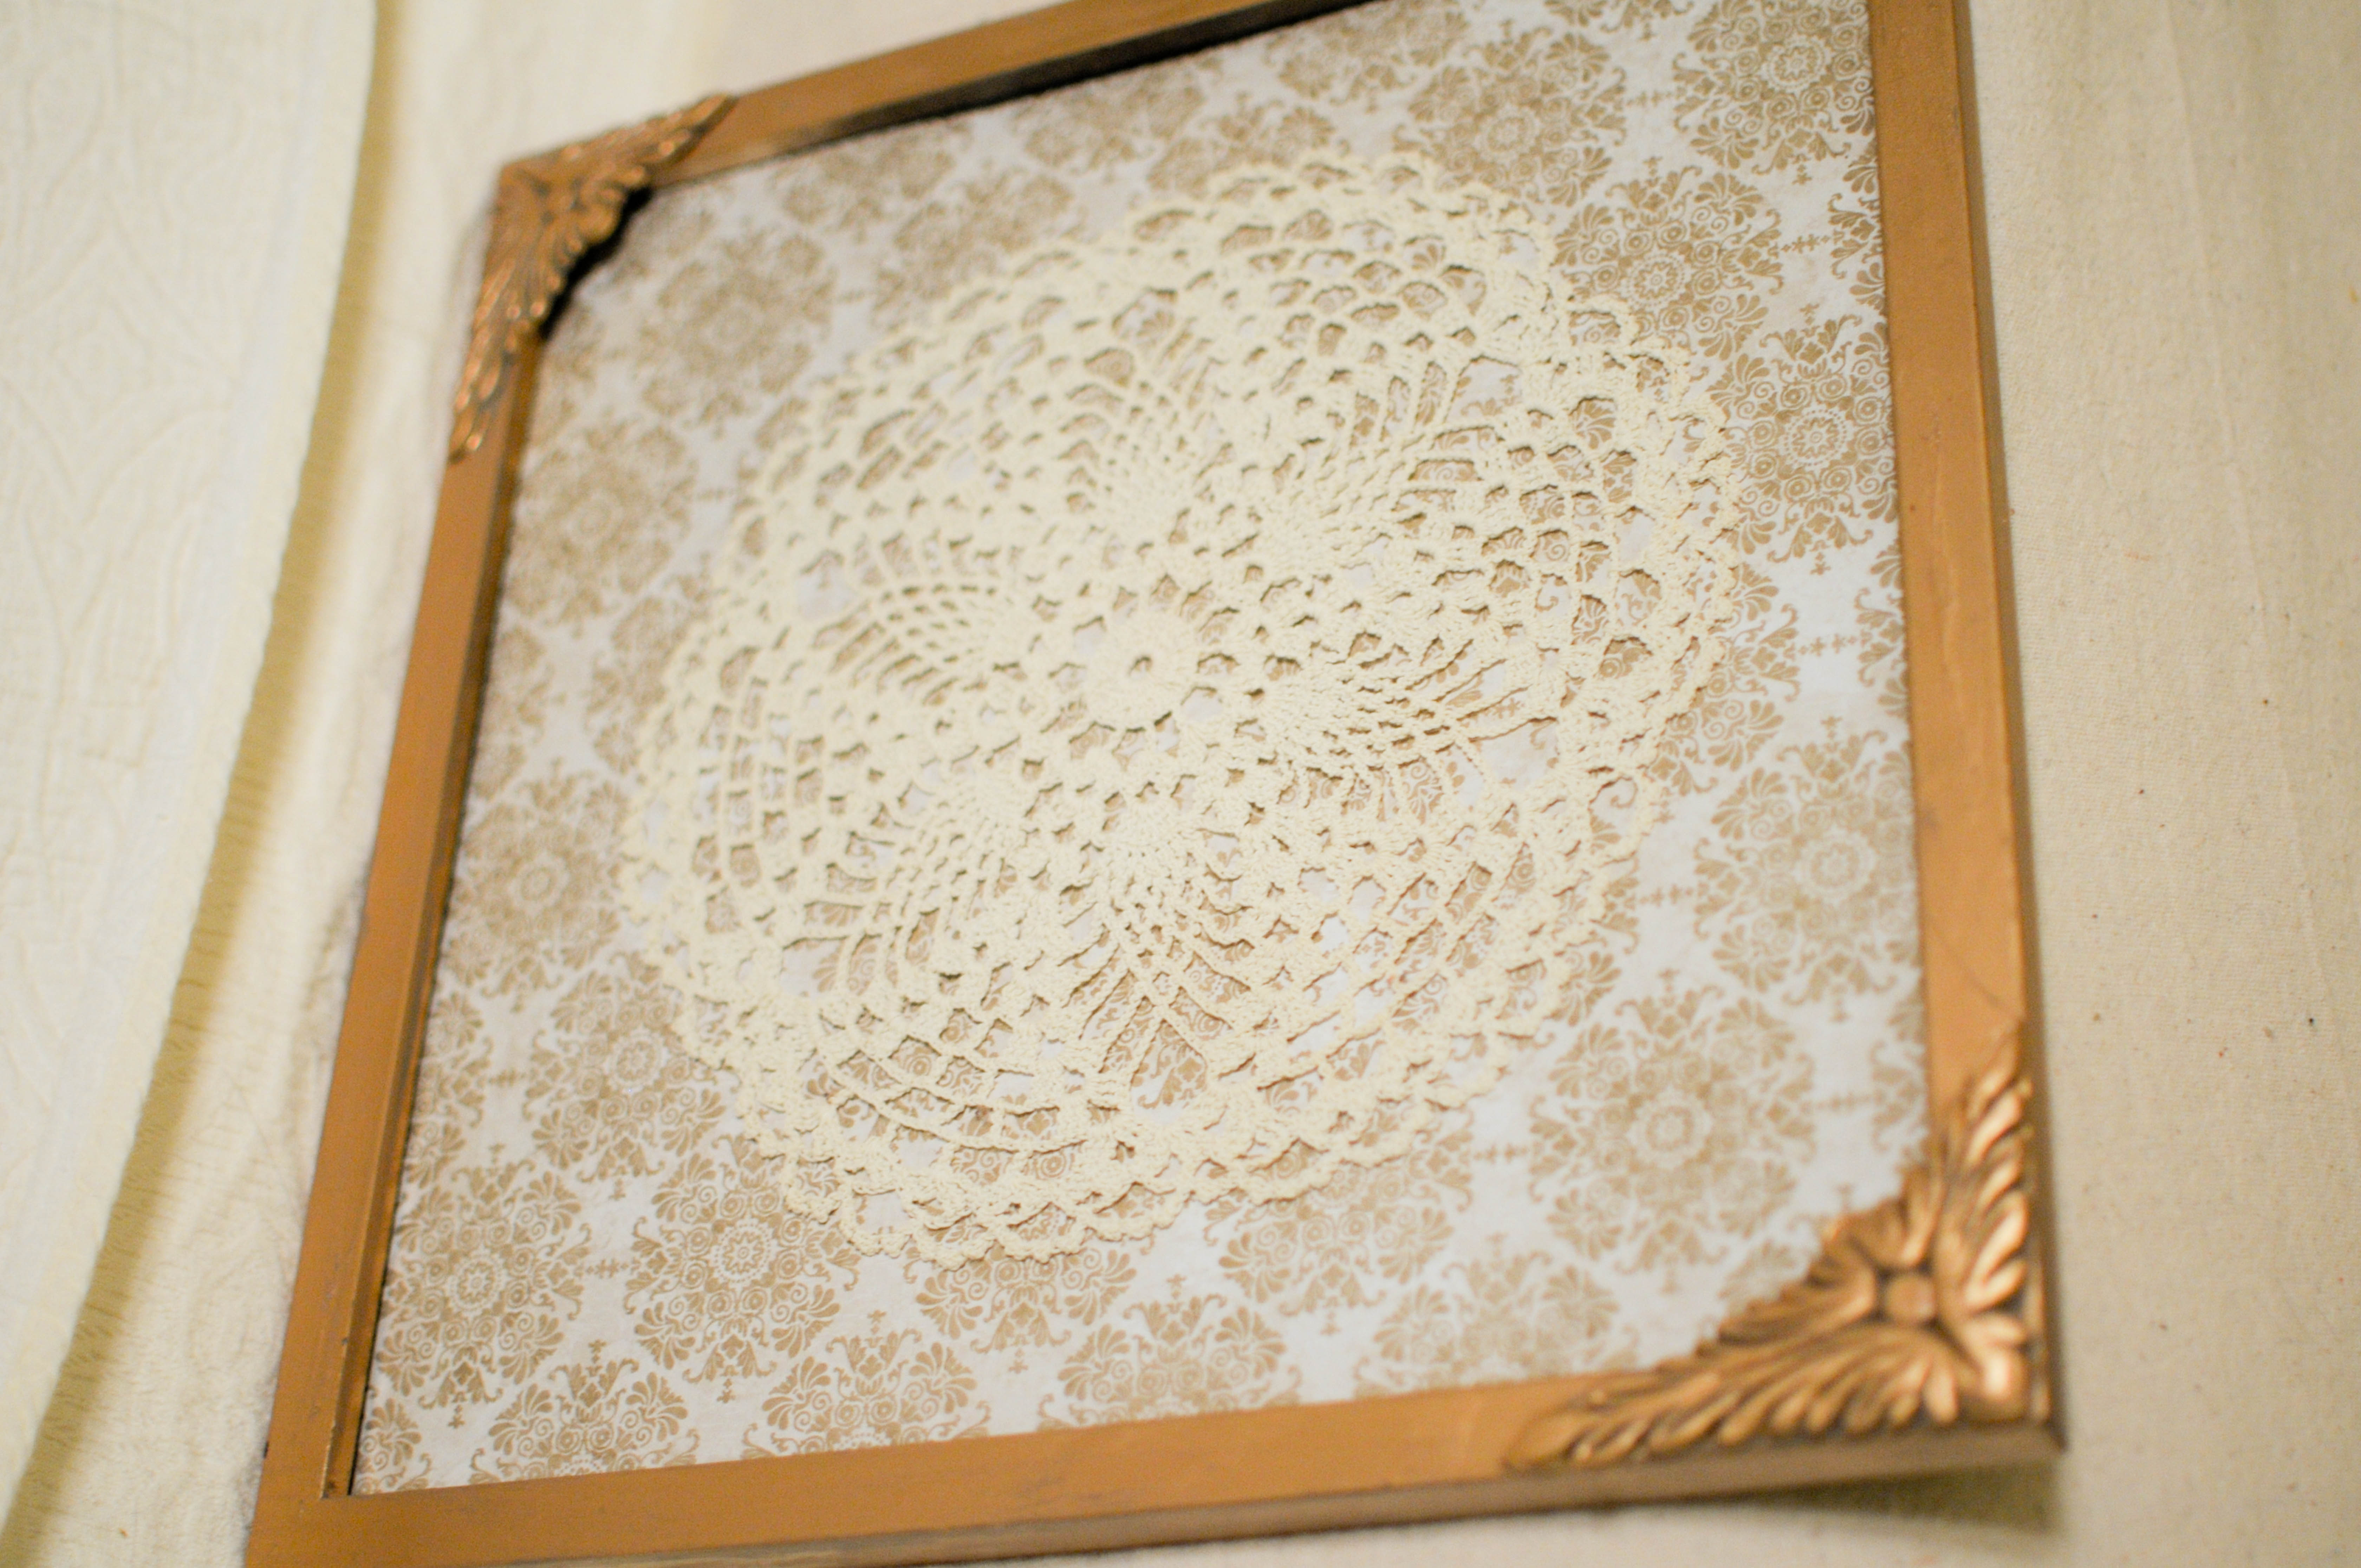 How to put scrapbook paper on wood - Posted